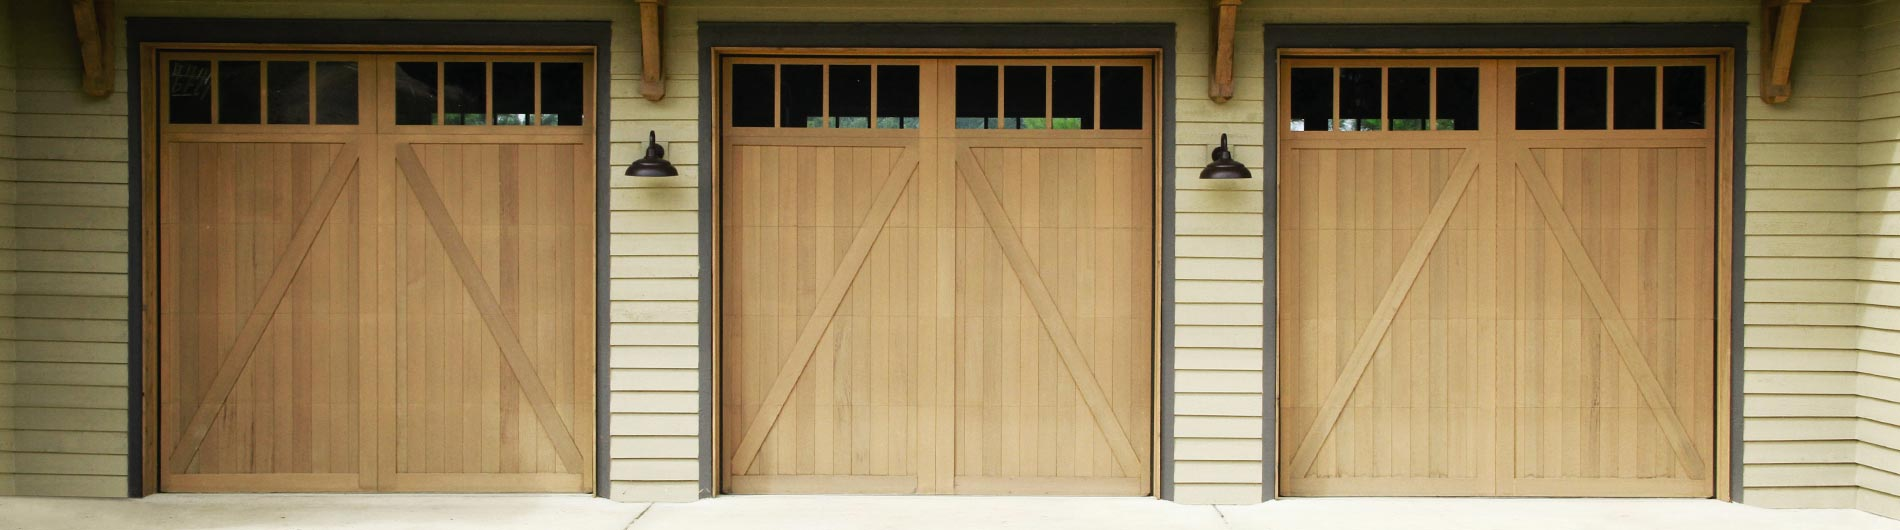 Eggers Wood Doors : Wood paneling eggers industries how to build the